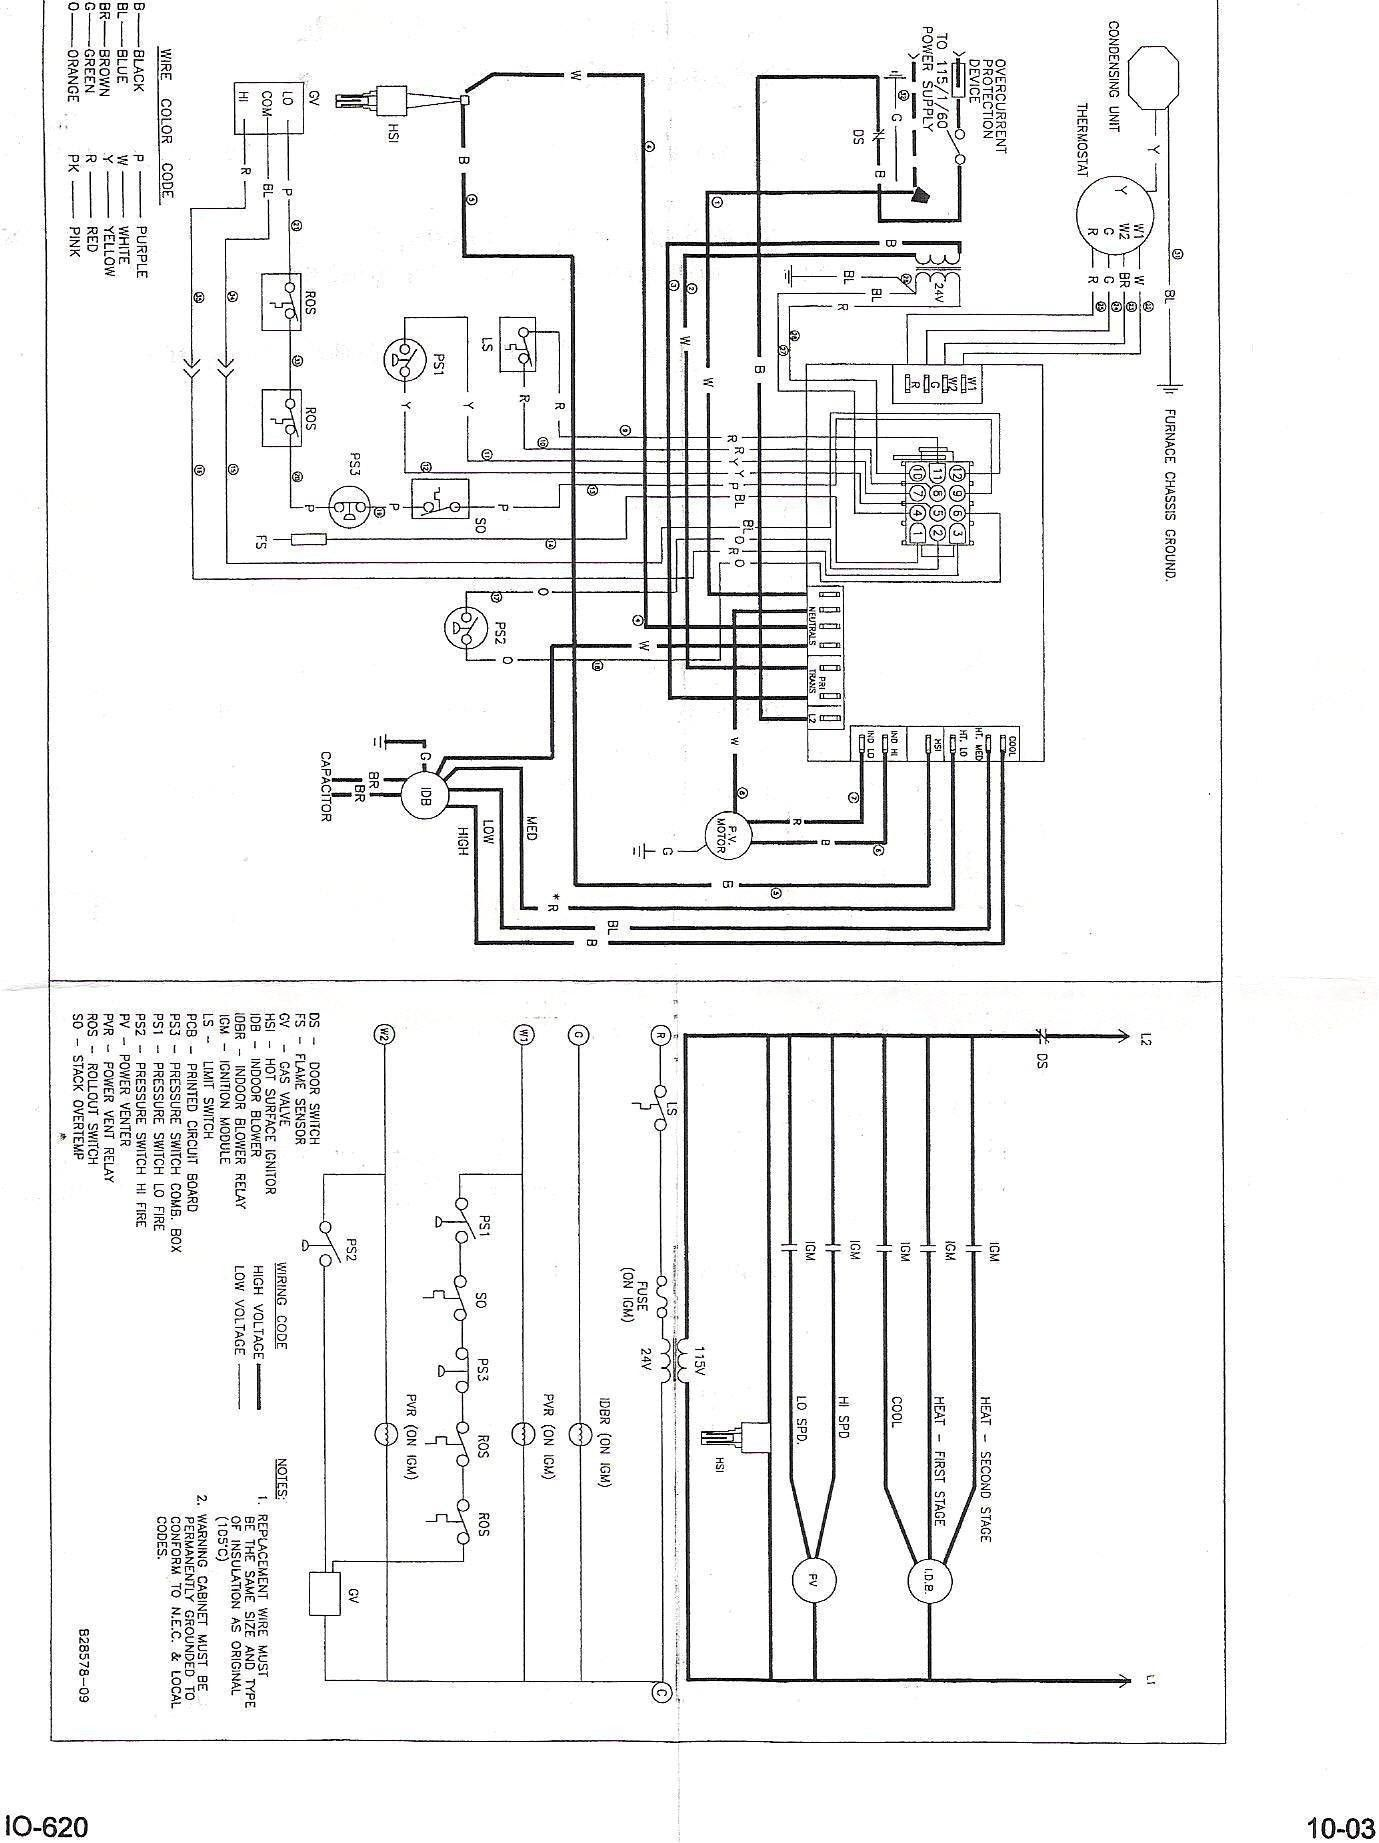 hight resolution of bryant 394f gas furnace schematics wiring diagram blog bryant 394f gas furnace schematics